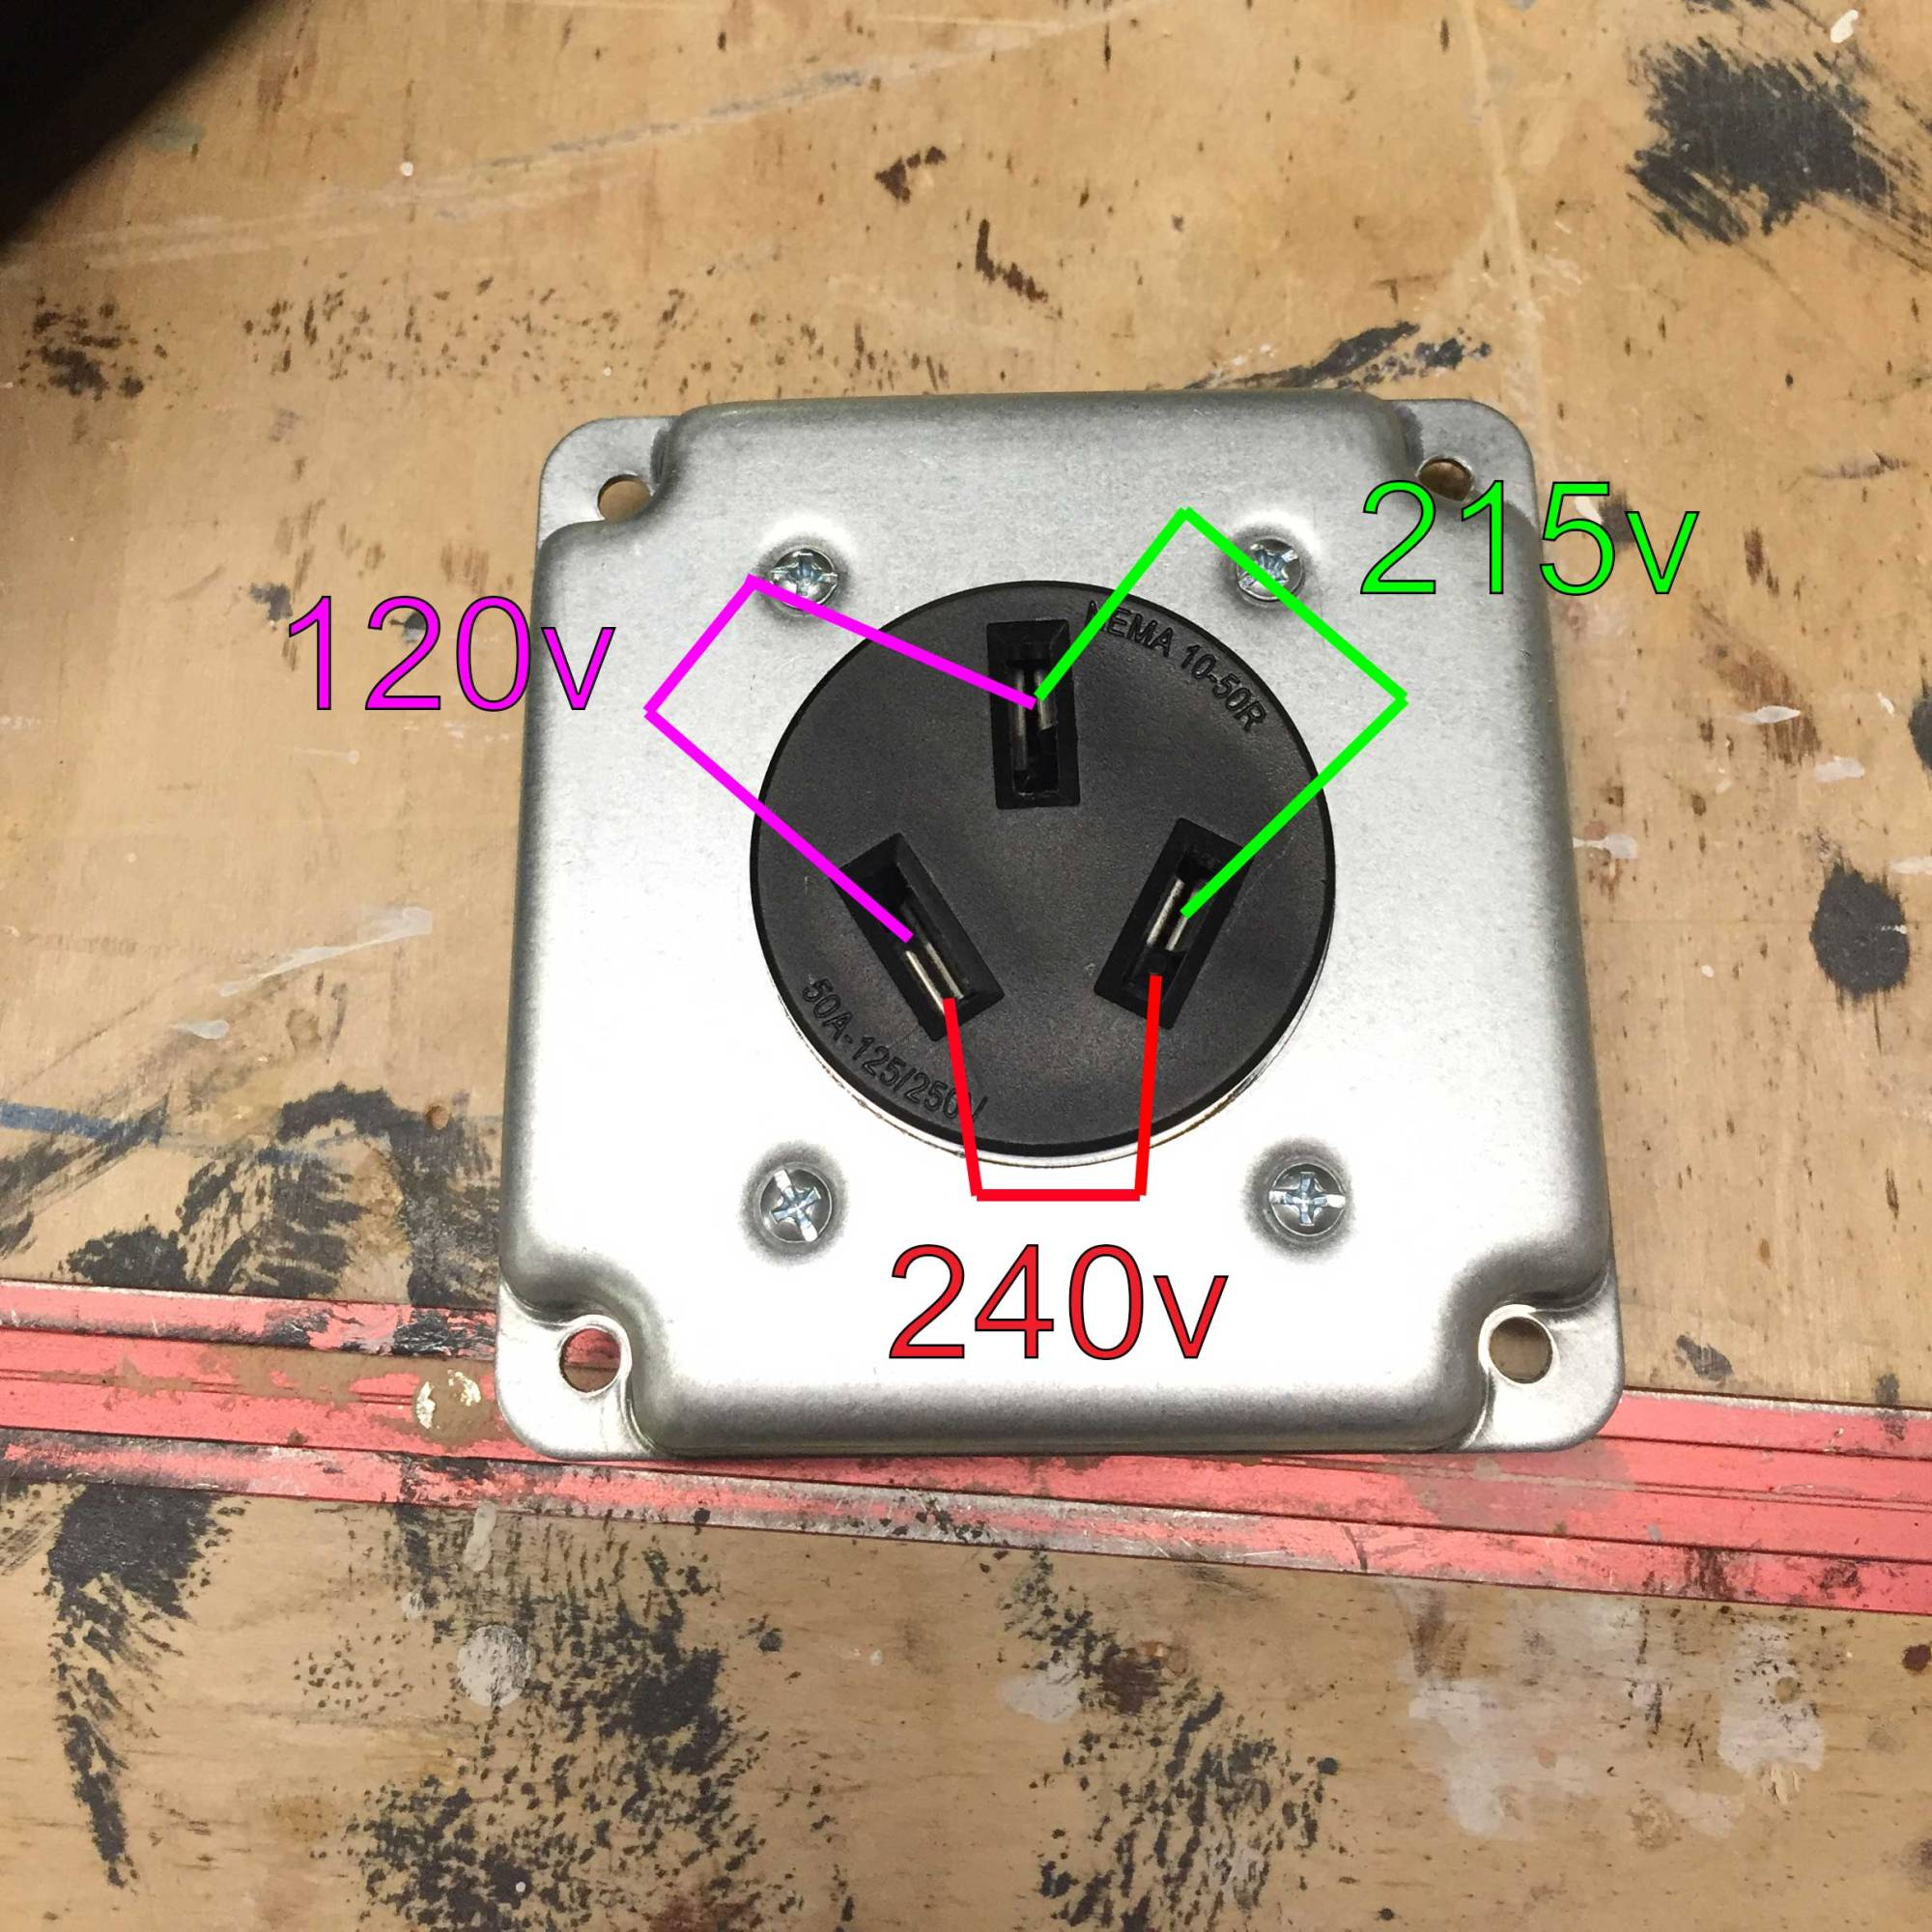 hight resolution of after reading these values i figured i screwed up so i removed the plug and put everything back to how i found it however there was another 240v plug in